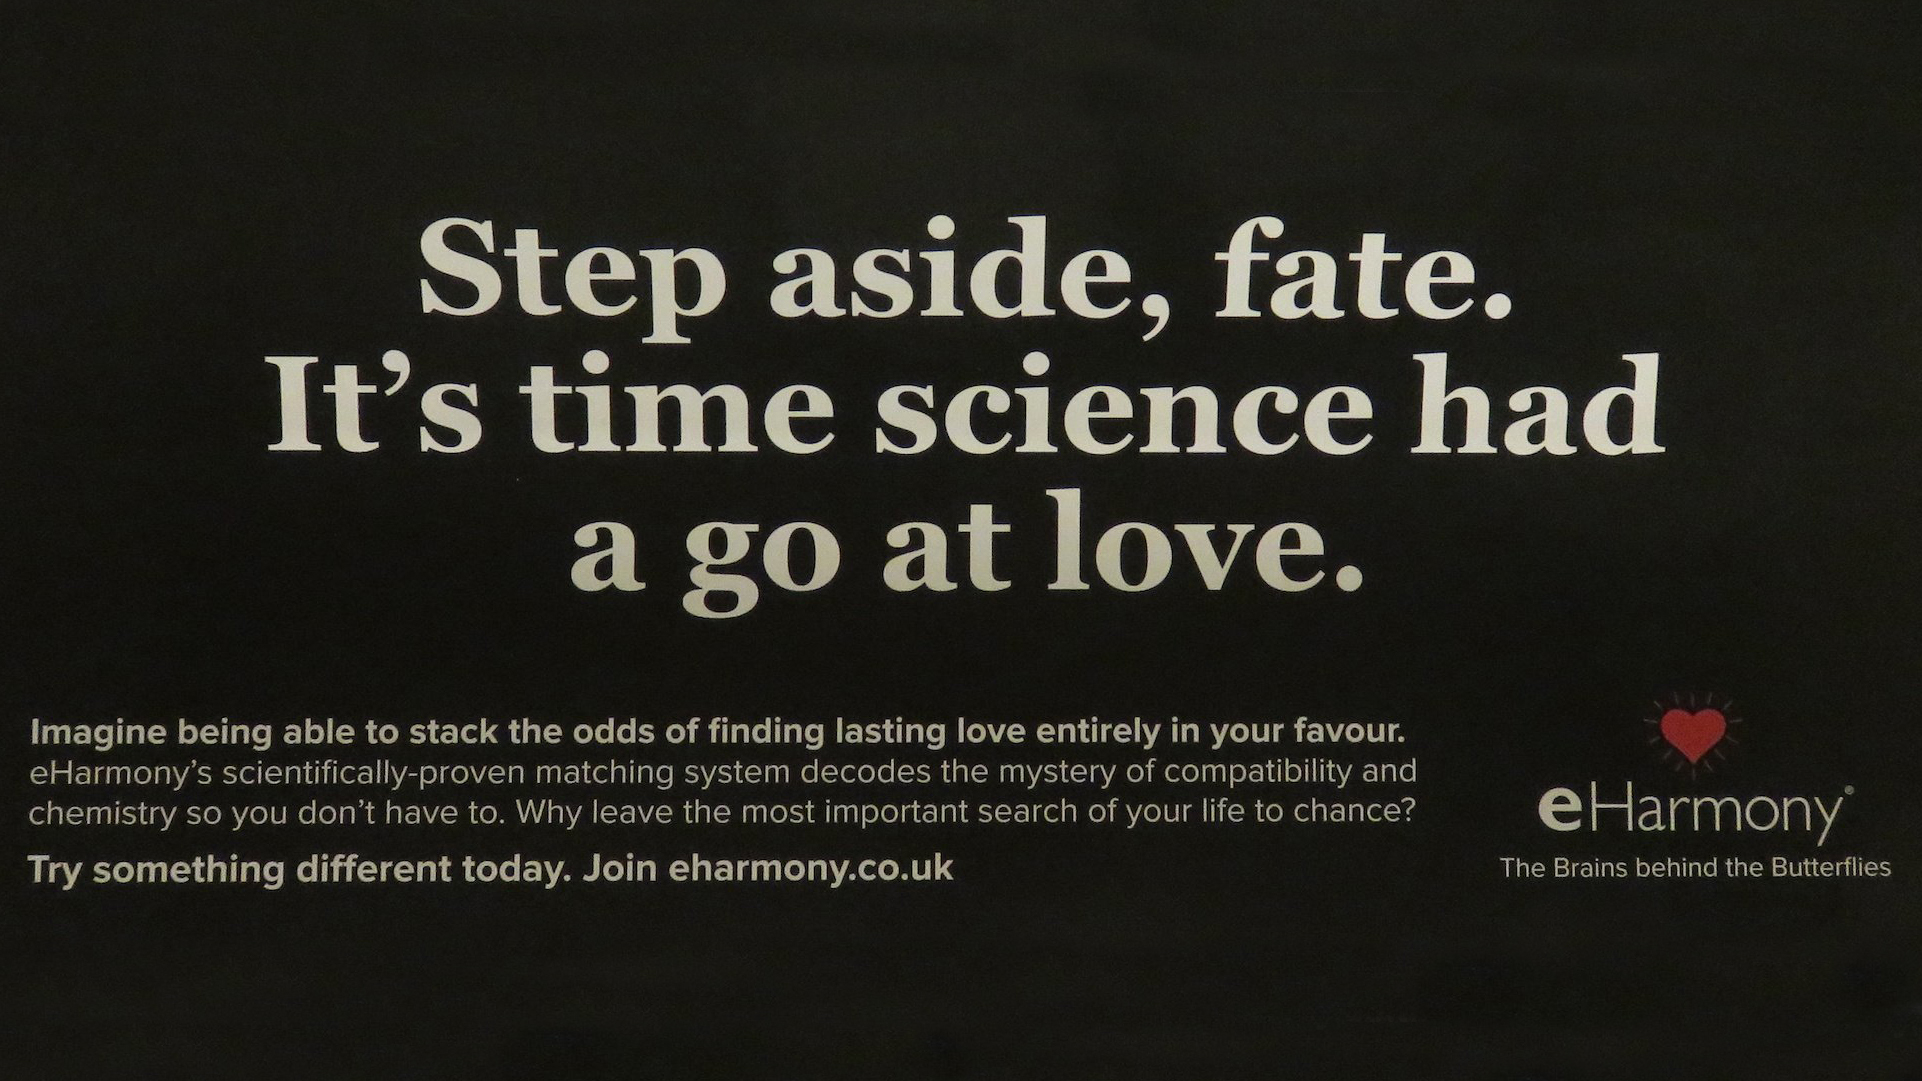 banned eharmony ad citing science